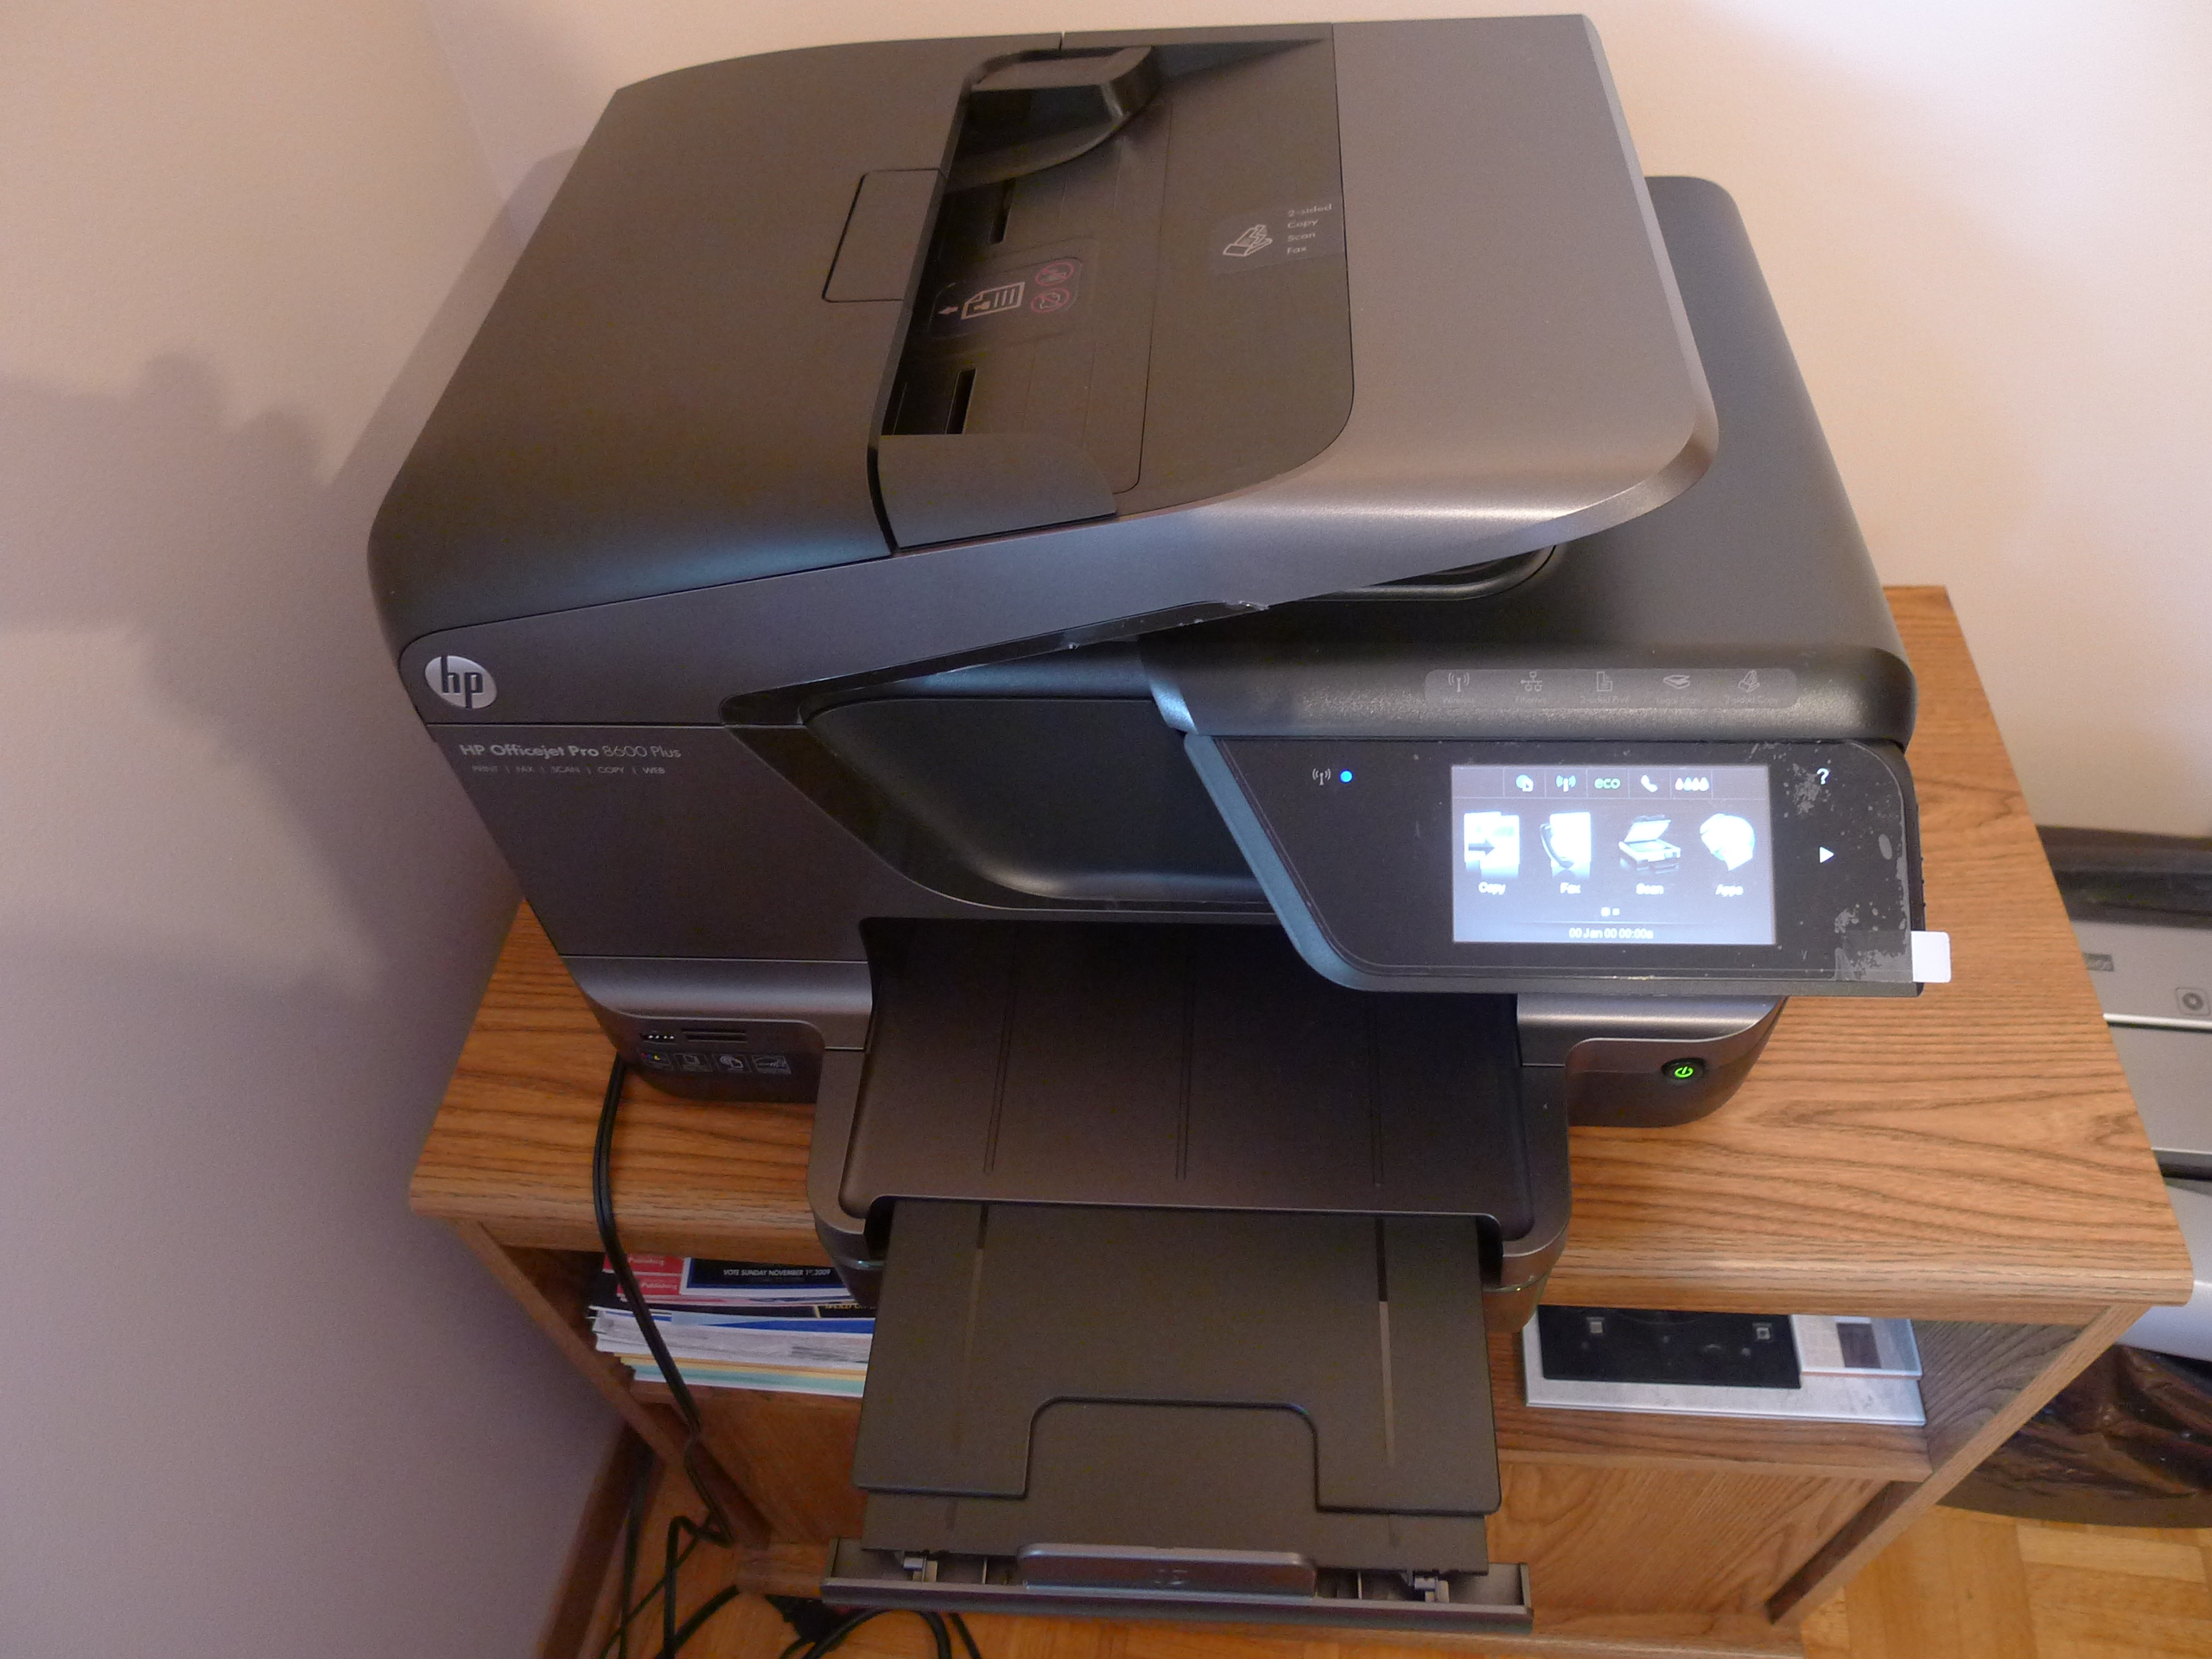 Versatile multifunction printer from hp on sale now!